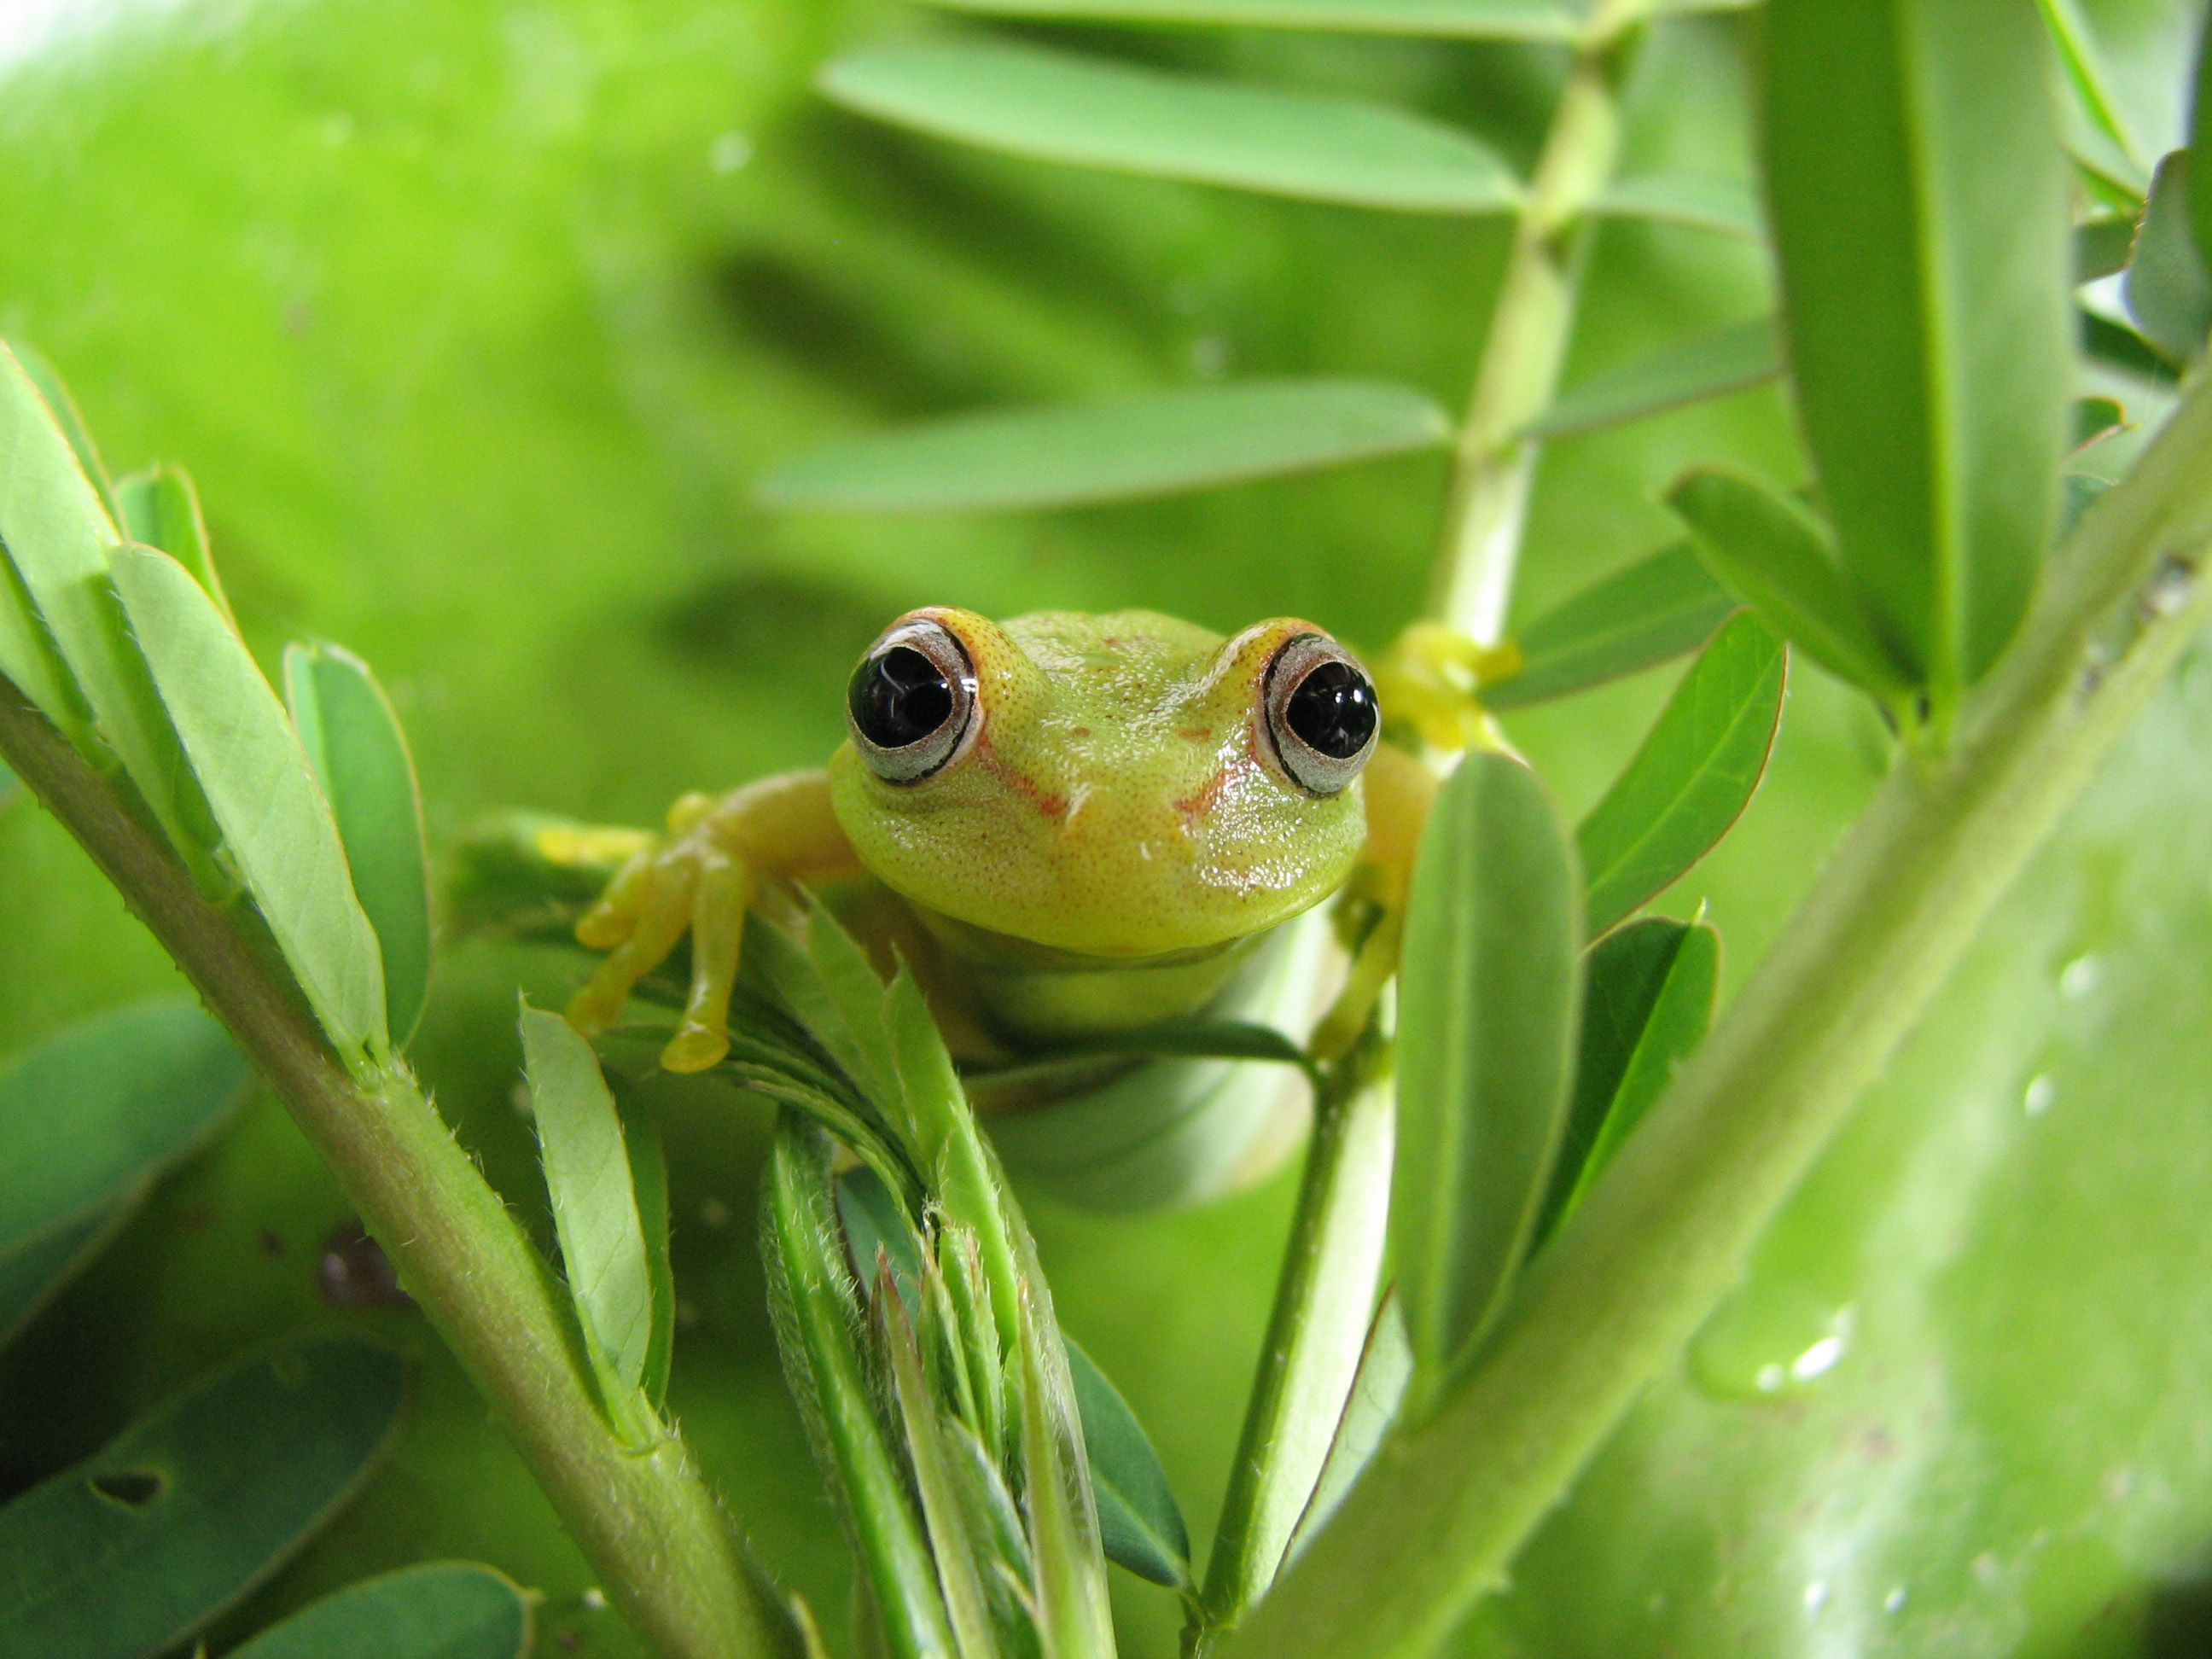 a close up shot of a green frog hanging on greenery